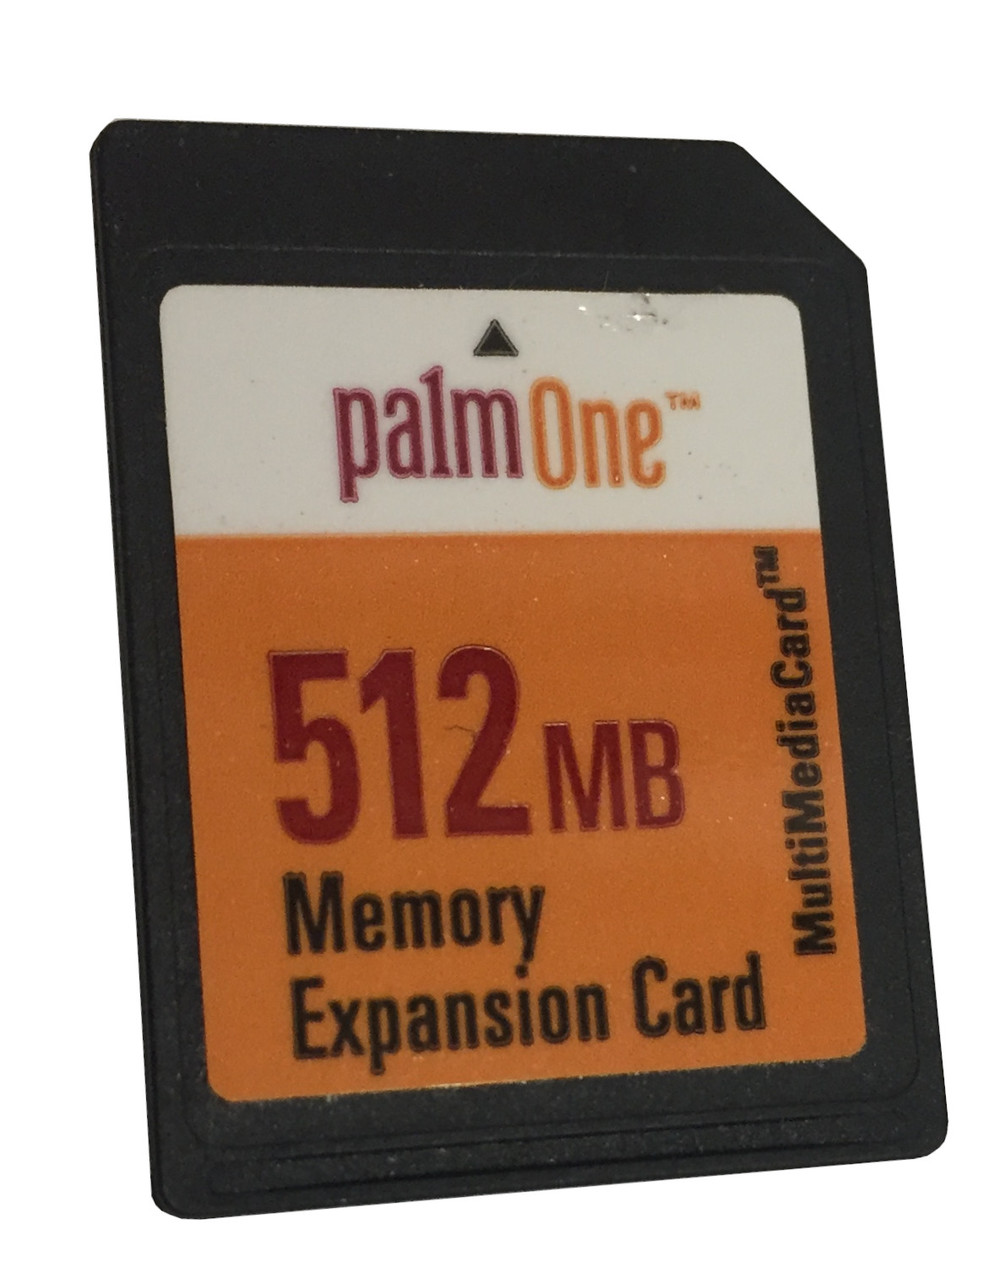 Scan of Document: palmOne 512MB Memory Expansion Card